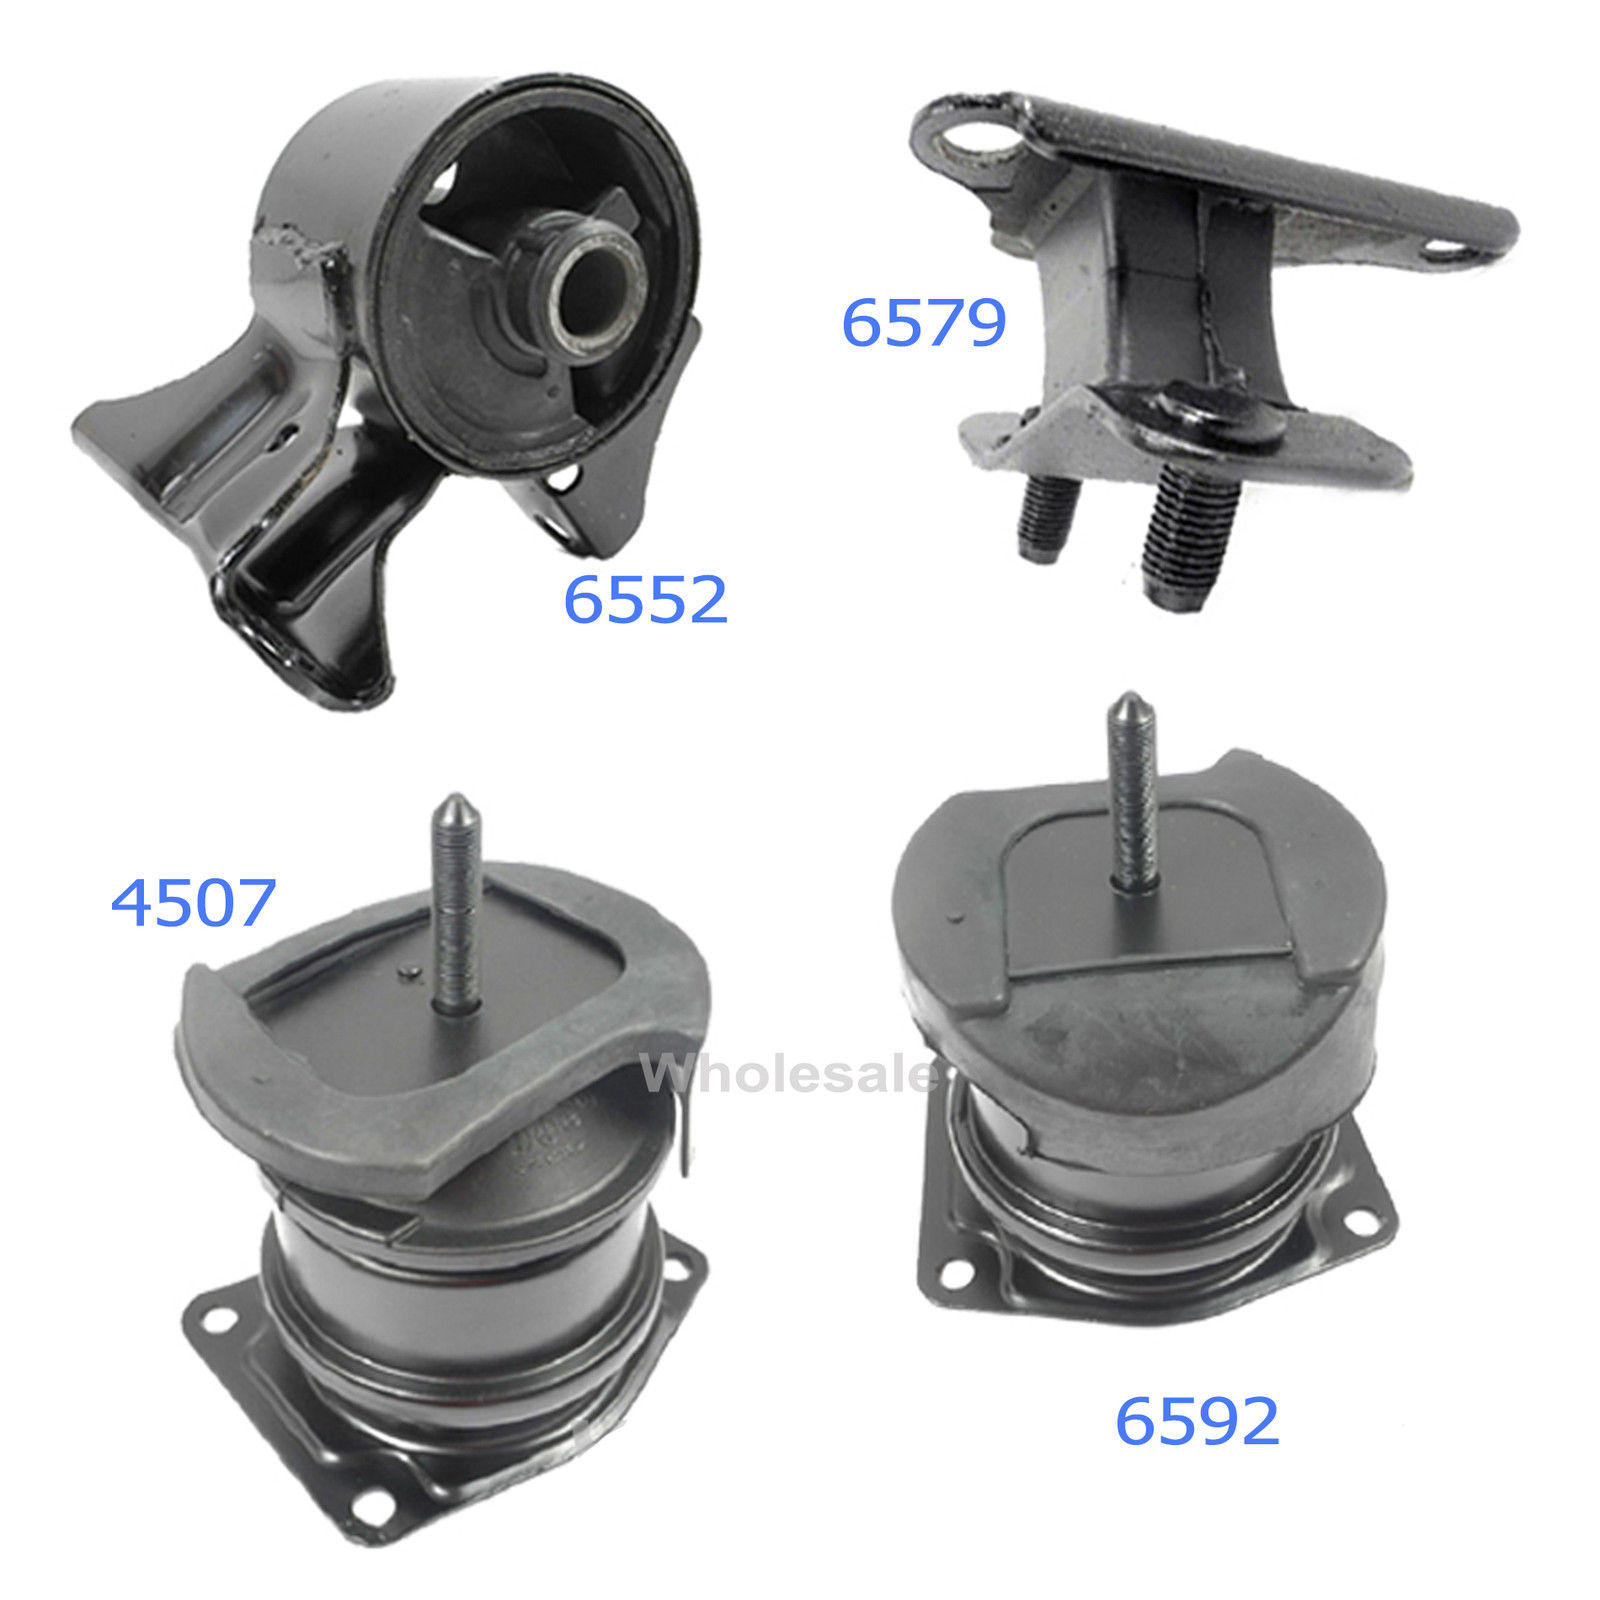 M065 6592 4507 6552 6579 Engine Motor Mount For 6579 98-02 Honda Accord 3.0L